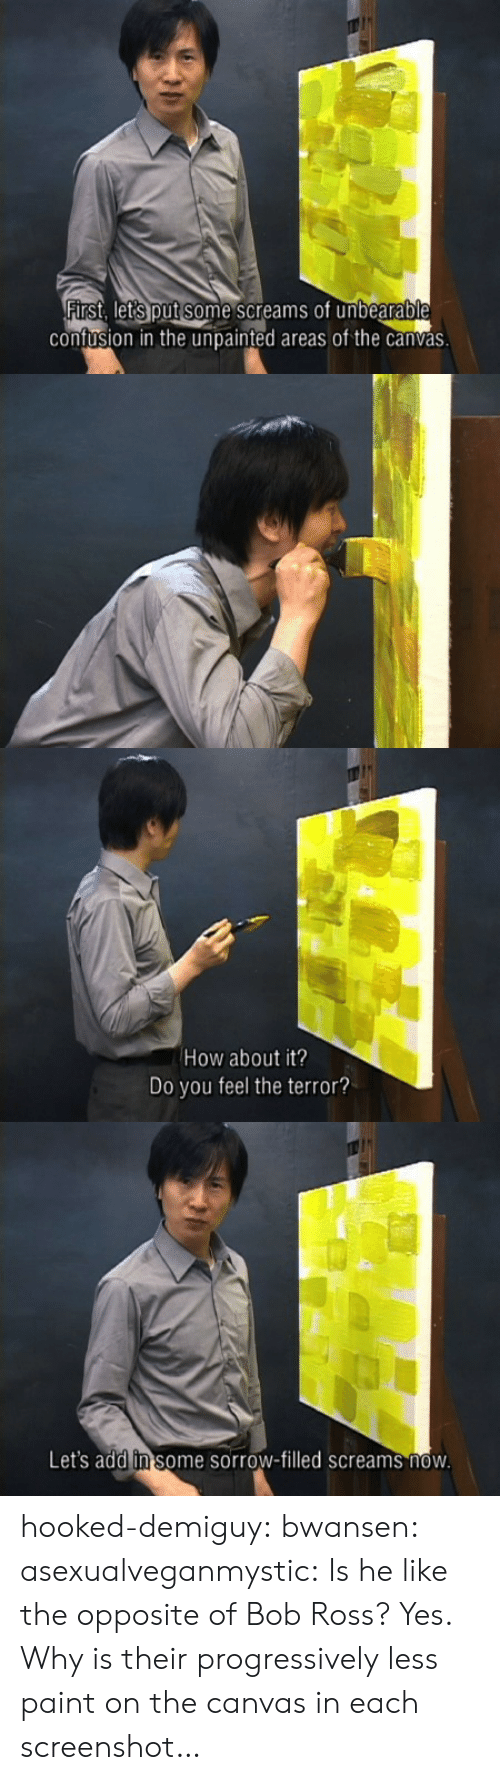 Target, Tumblr, and Blog: confusion in the unpainted areas of the canvas   How about it?  Do you feel the terror?   Let's add in some sorrow-filled screams now hooked-demiguy: bwansen:  asexualveganmystic:  Is he like the opposite of Bob Ross?  Yes.   Why is their progressively less paint on the canvas in each screenshot…